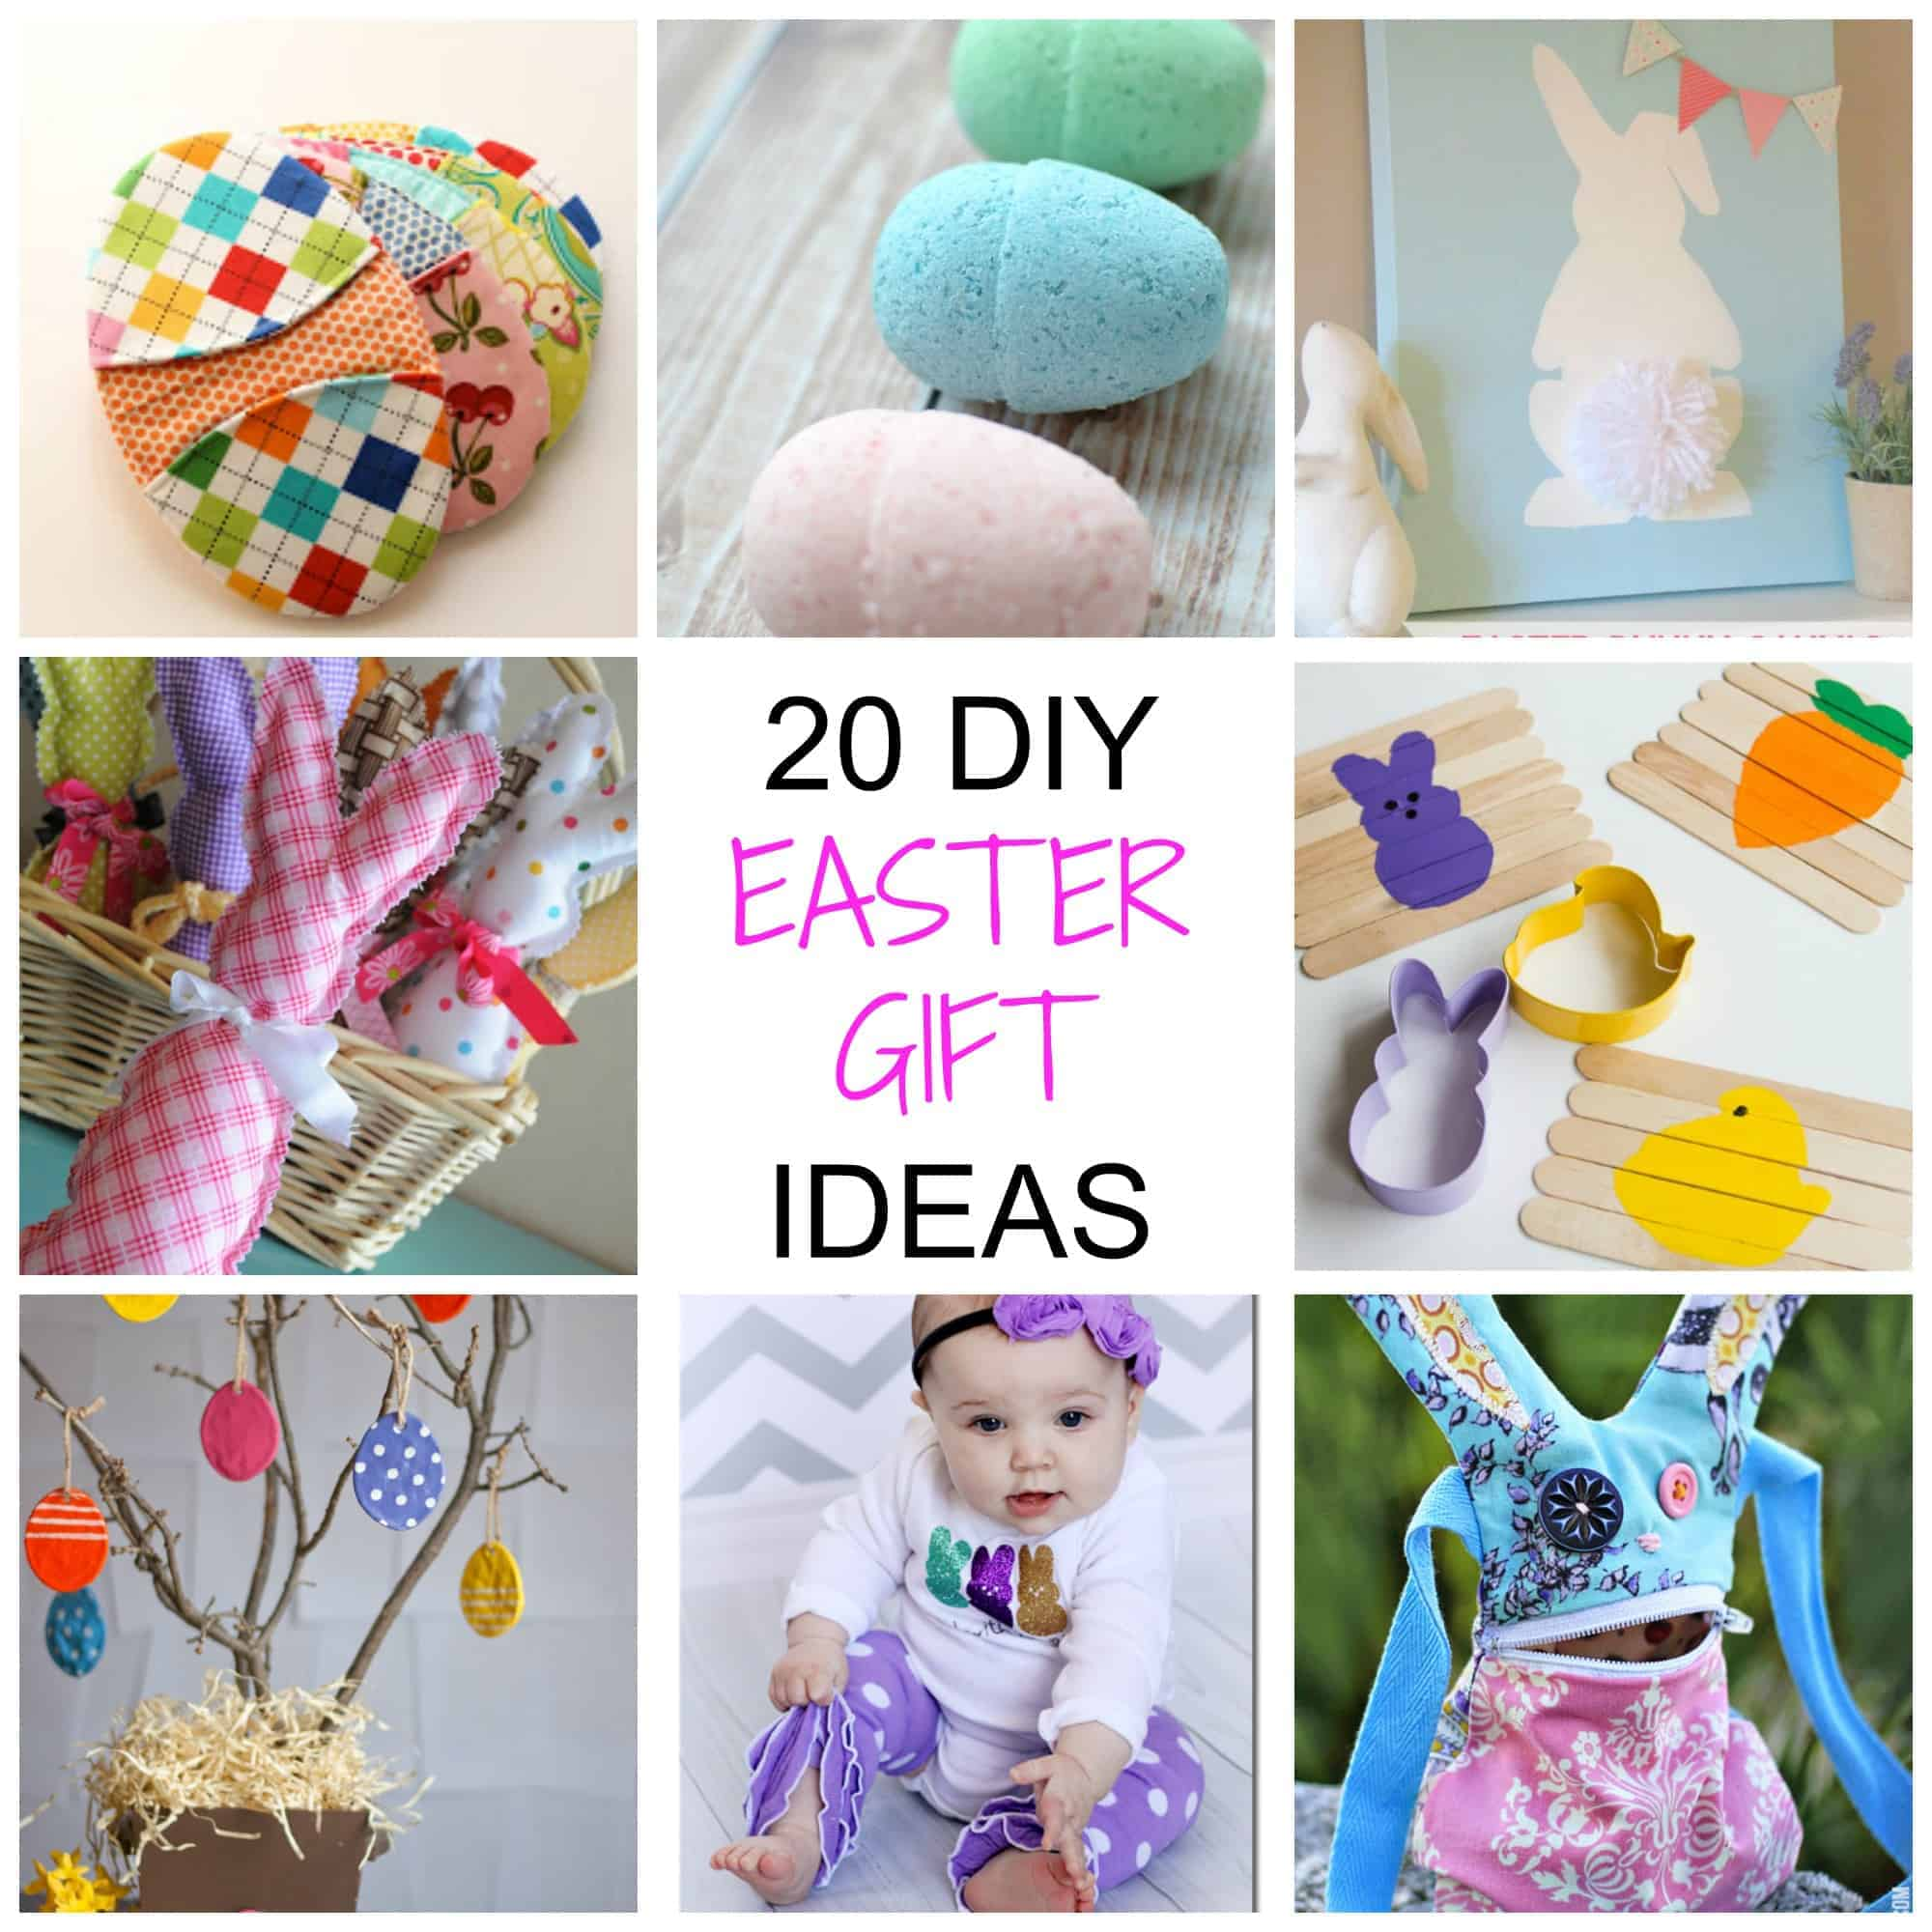 20 non chocolate diy easter gifts simplify create inspire diy easter gift ideas negle Choice Image